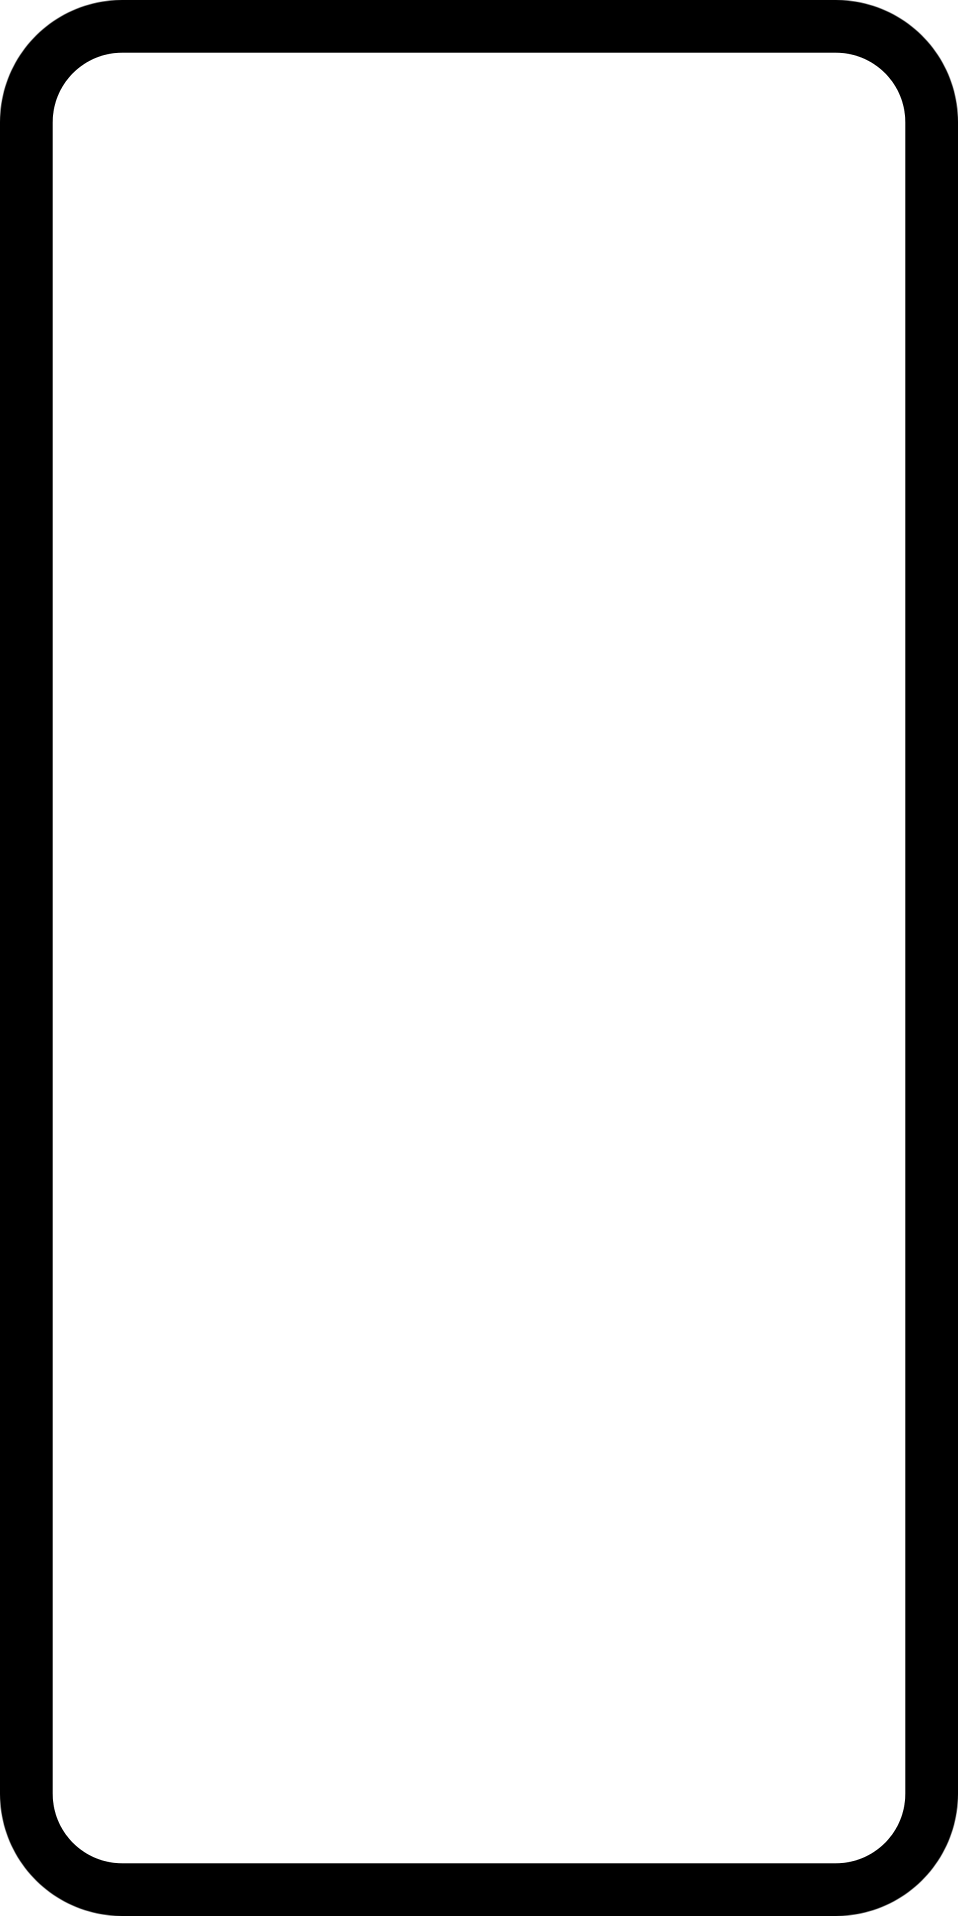 Illustration of a blank domino tile with a transparent background.